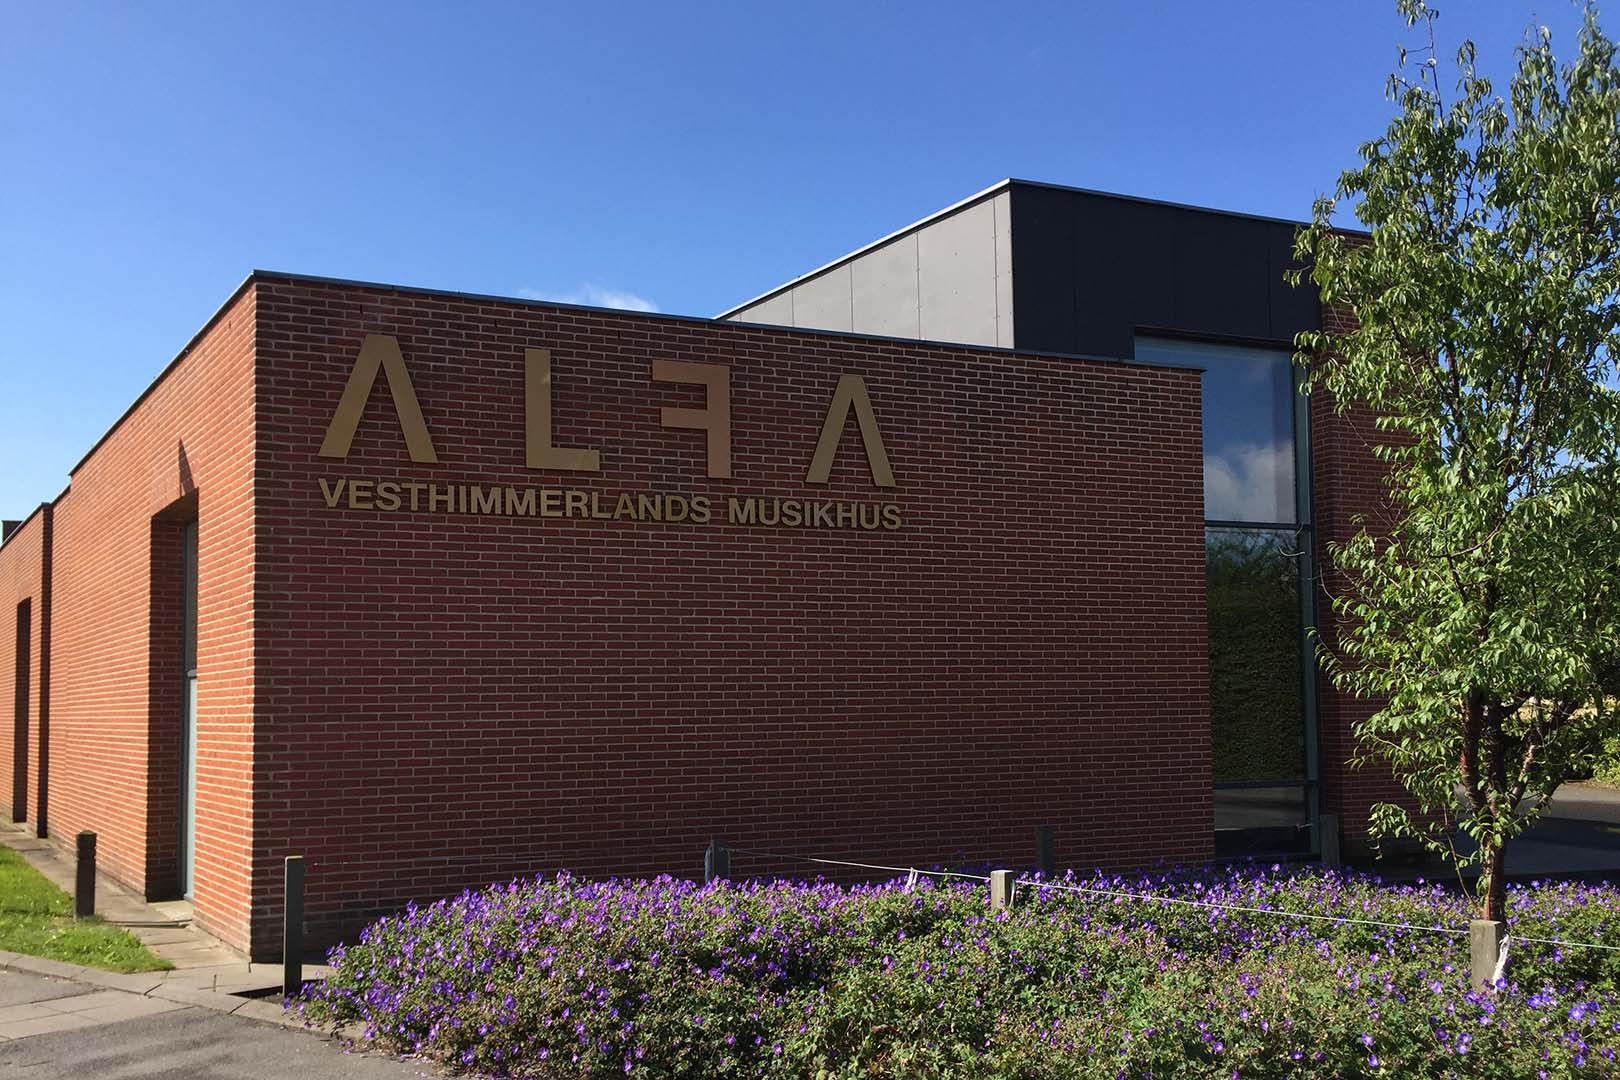 Vesthimmerlands Musikhus ALFA: Culture connects the community in Aars, Scan Magazine